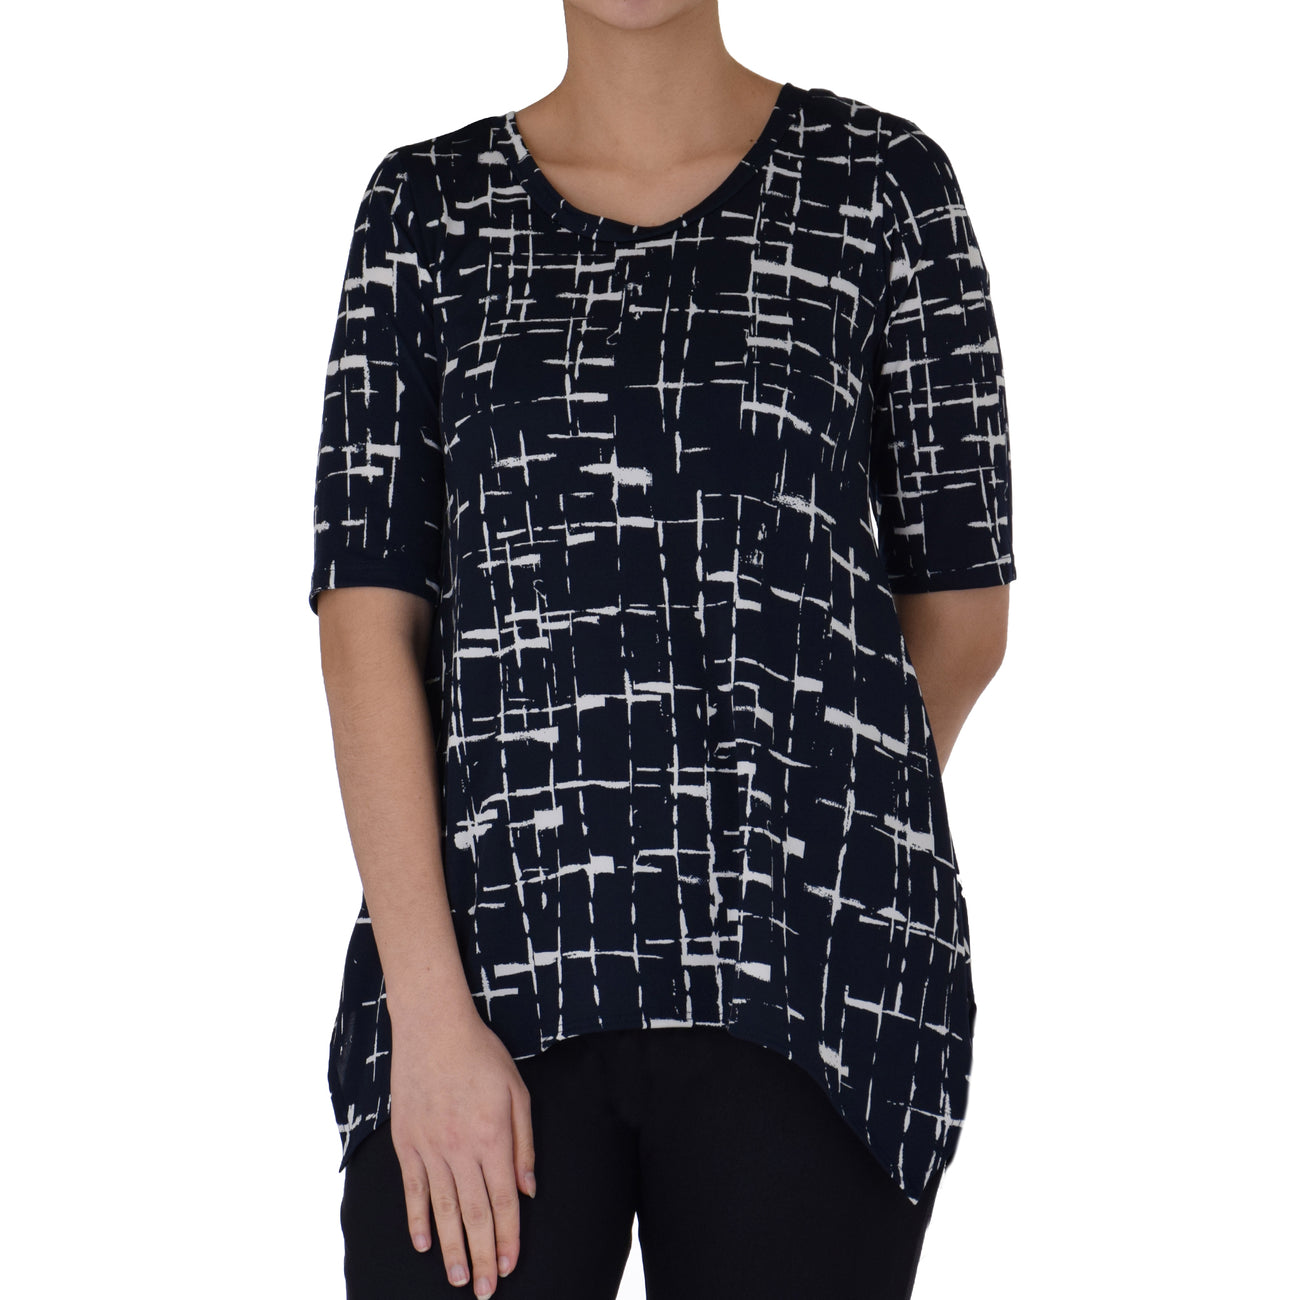 ALOHI ASYMMETRICAL KNIT TUNIC 1/2 SLEEVE